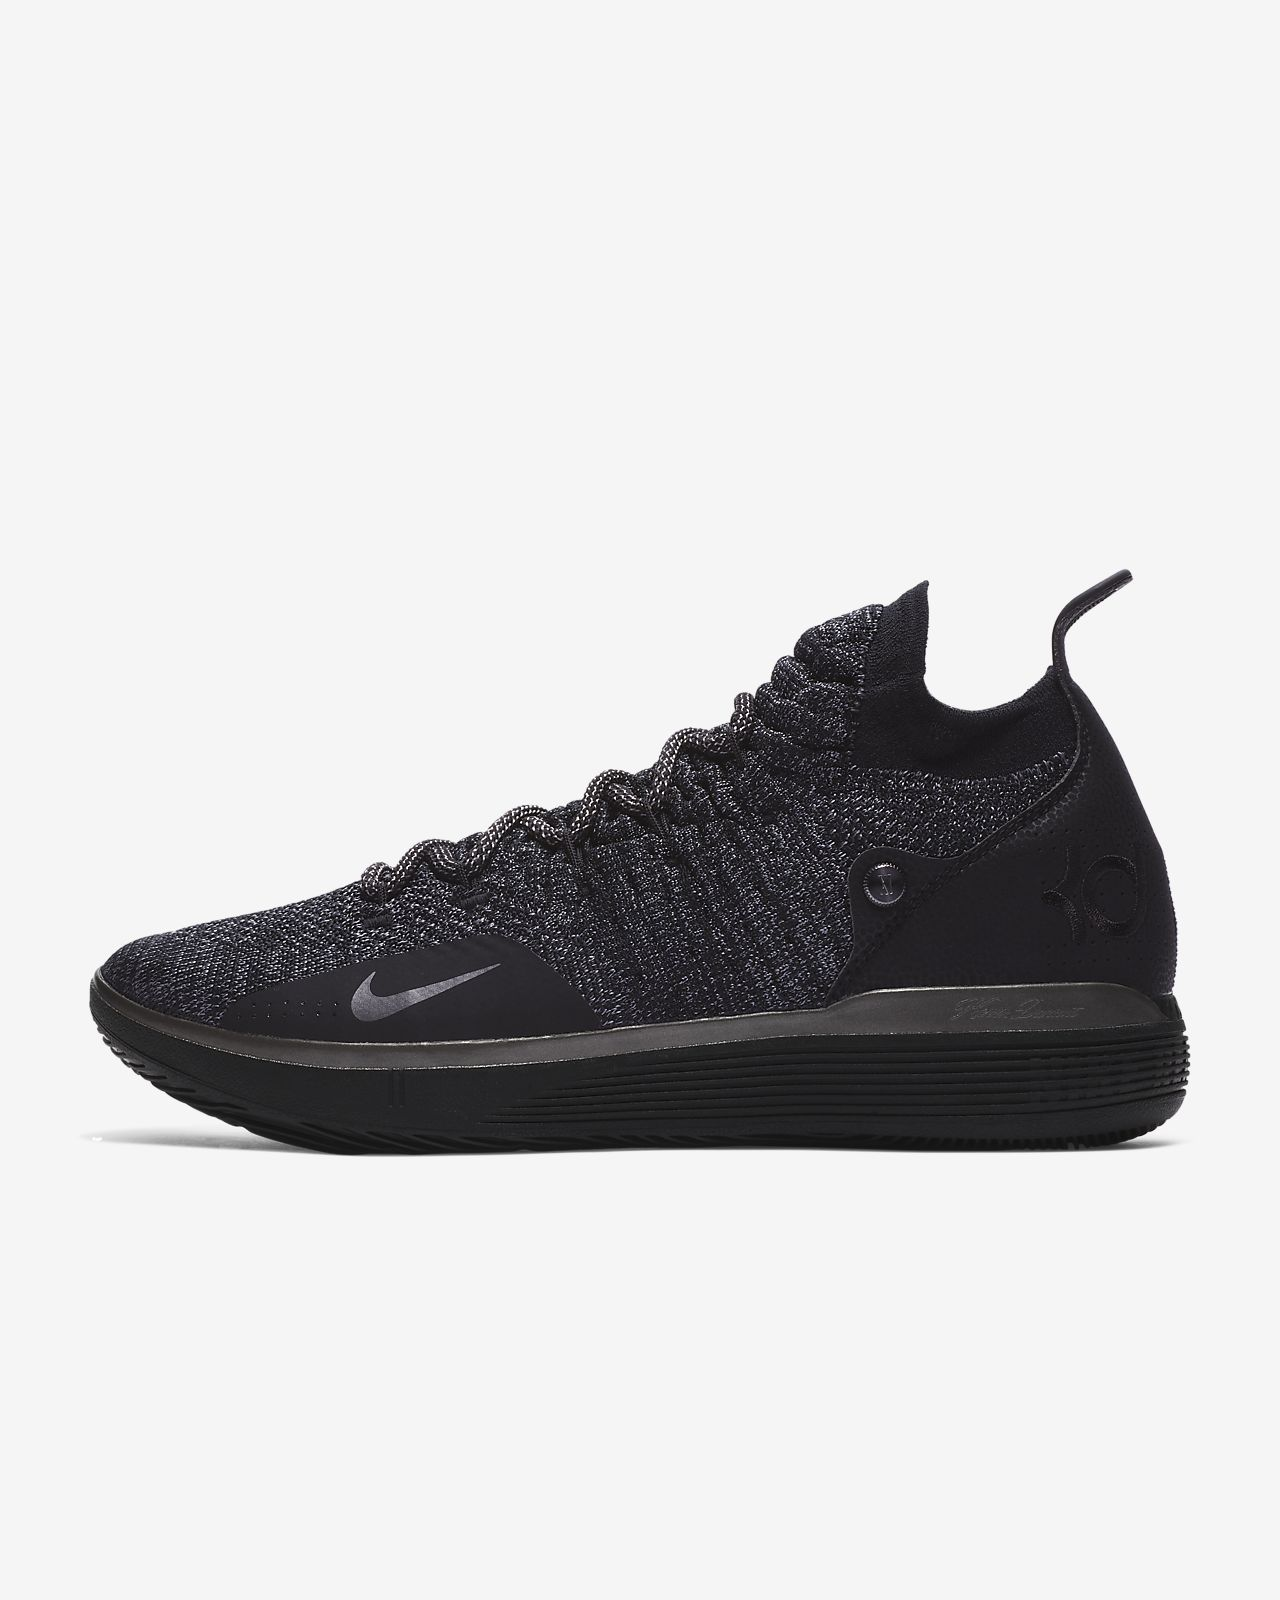 De Chaussure Basketball Be Kd11 Zoom Nike da88w5Uxqr